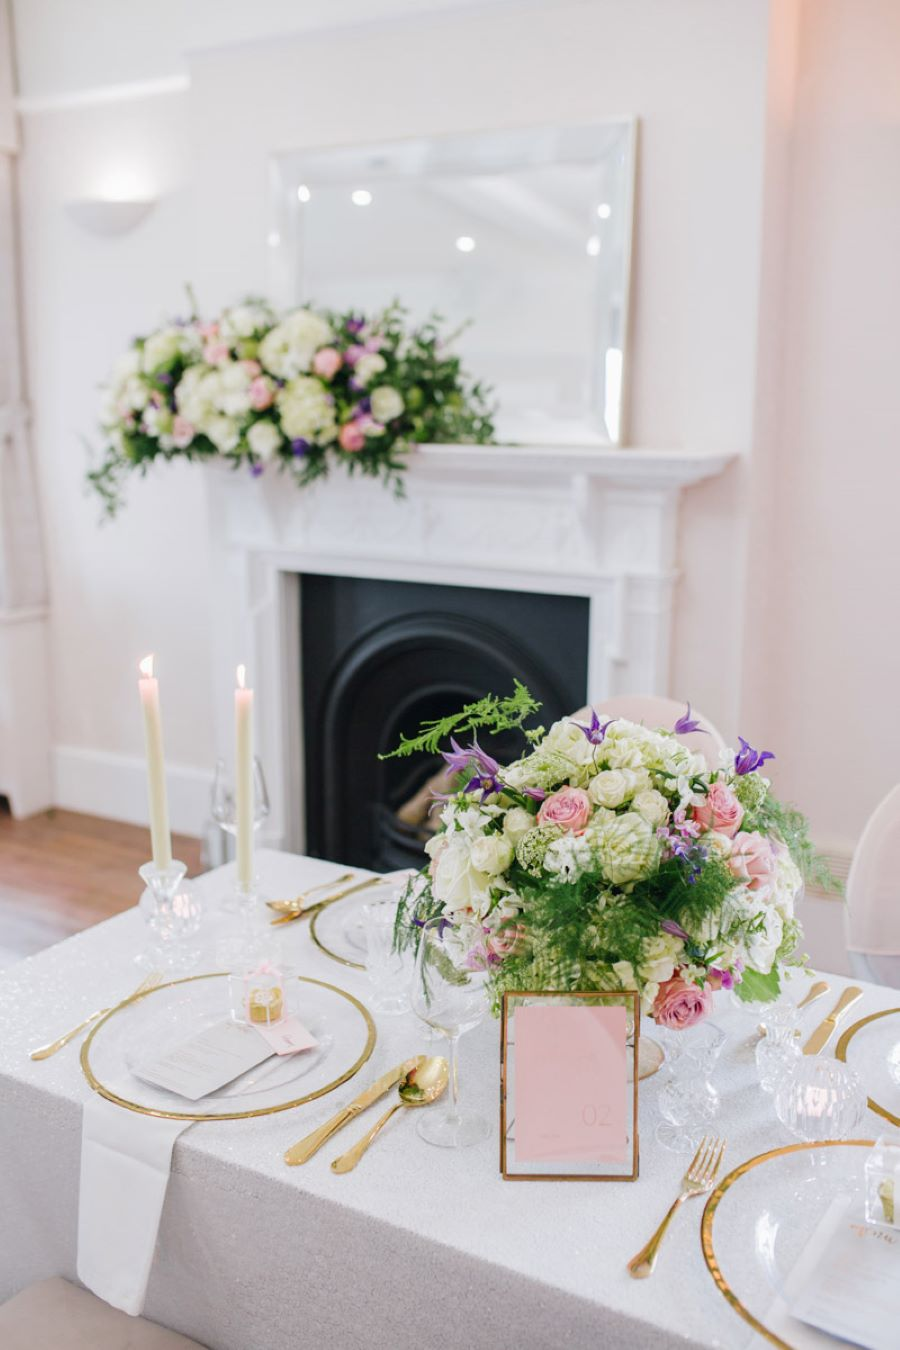 Light and romance with natural blush tones - wedding ideas from Downham Hall. Photographer credit Magical Moments Photography (27)